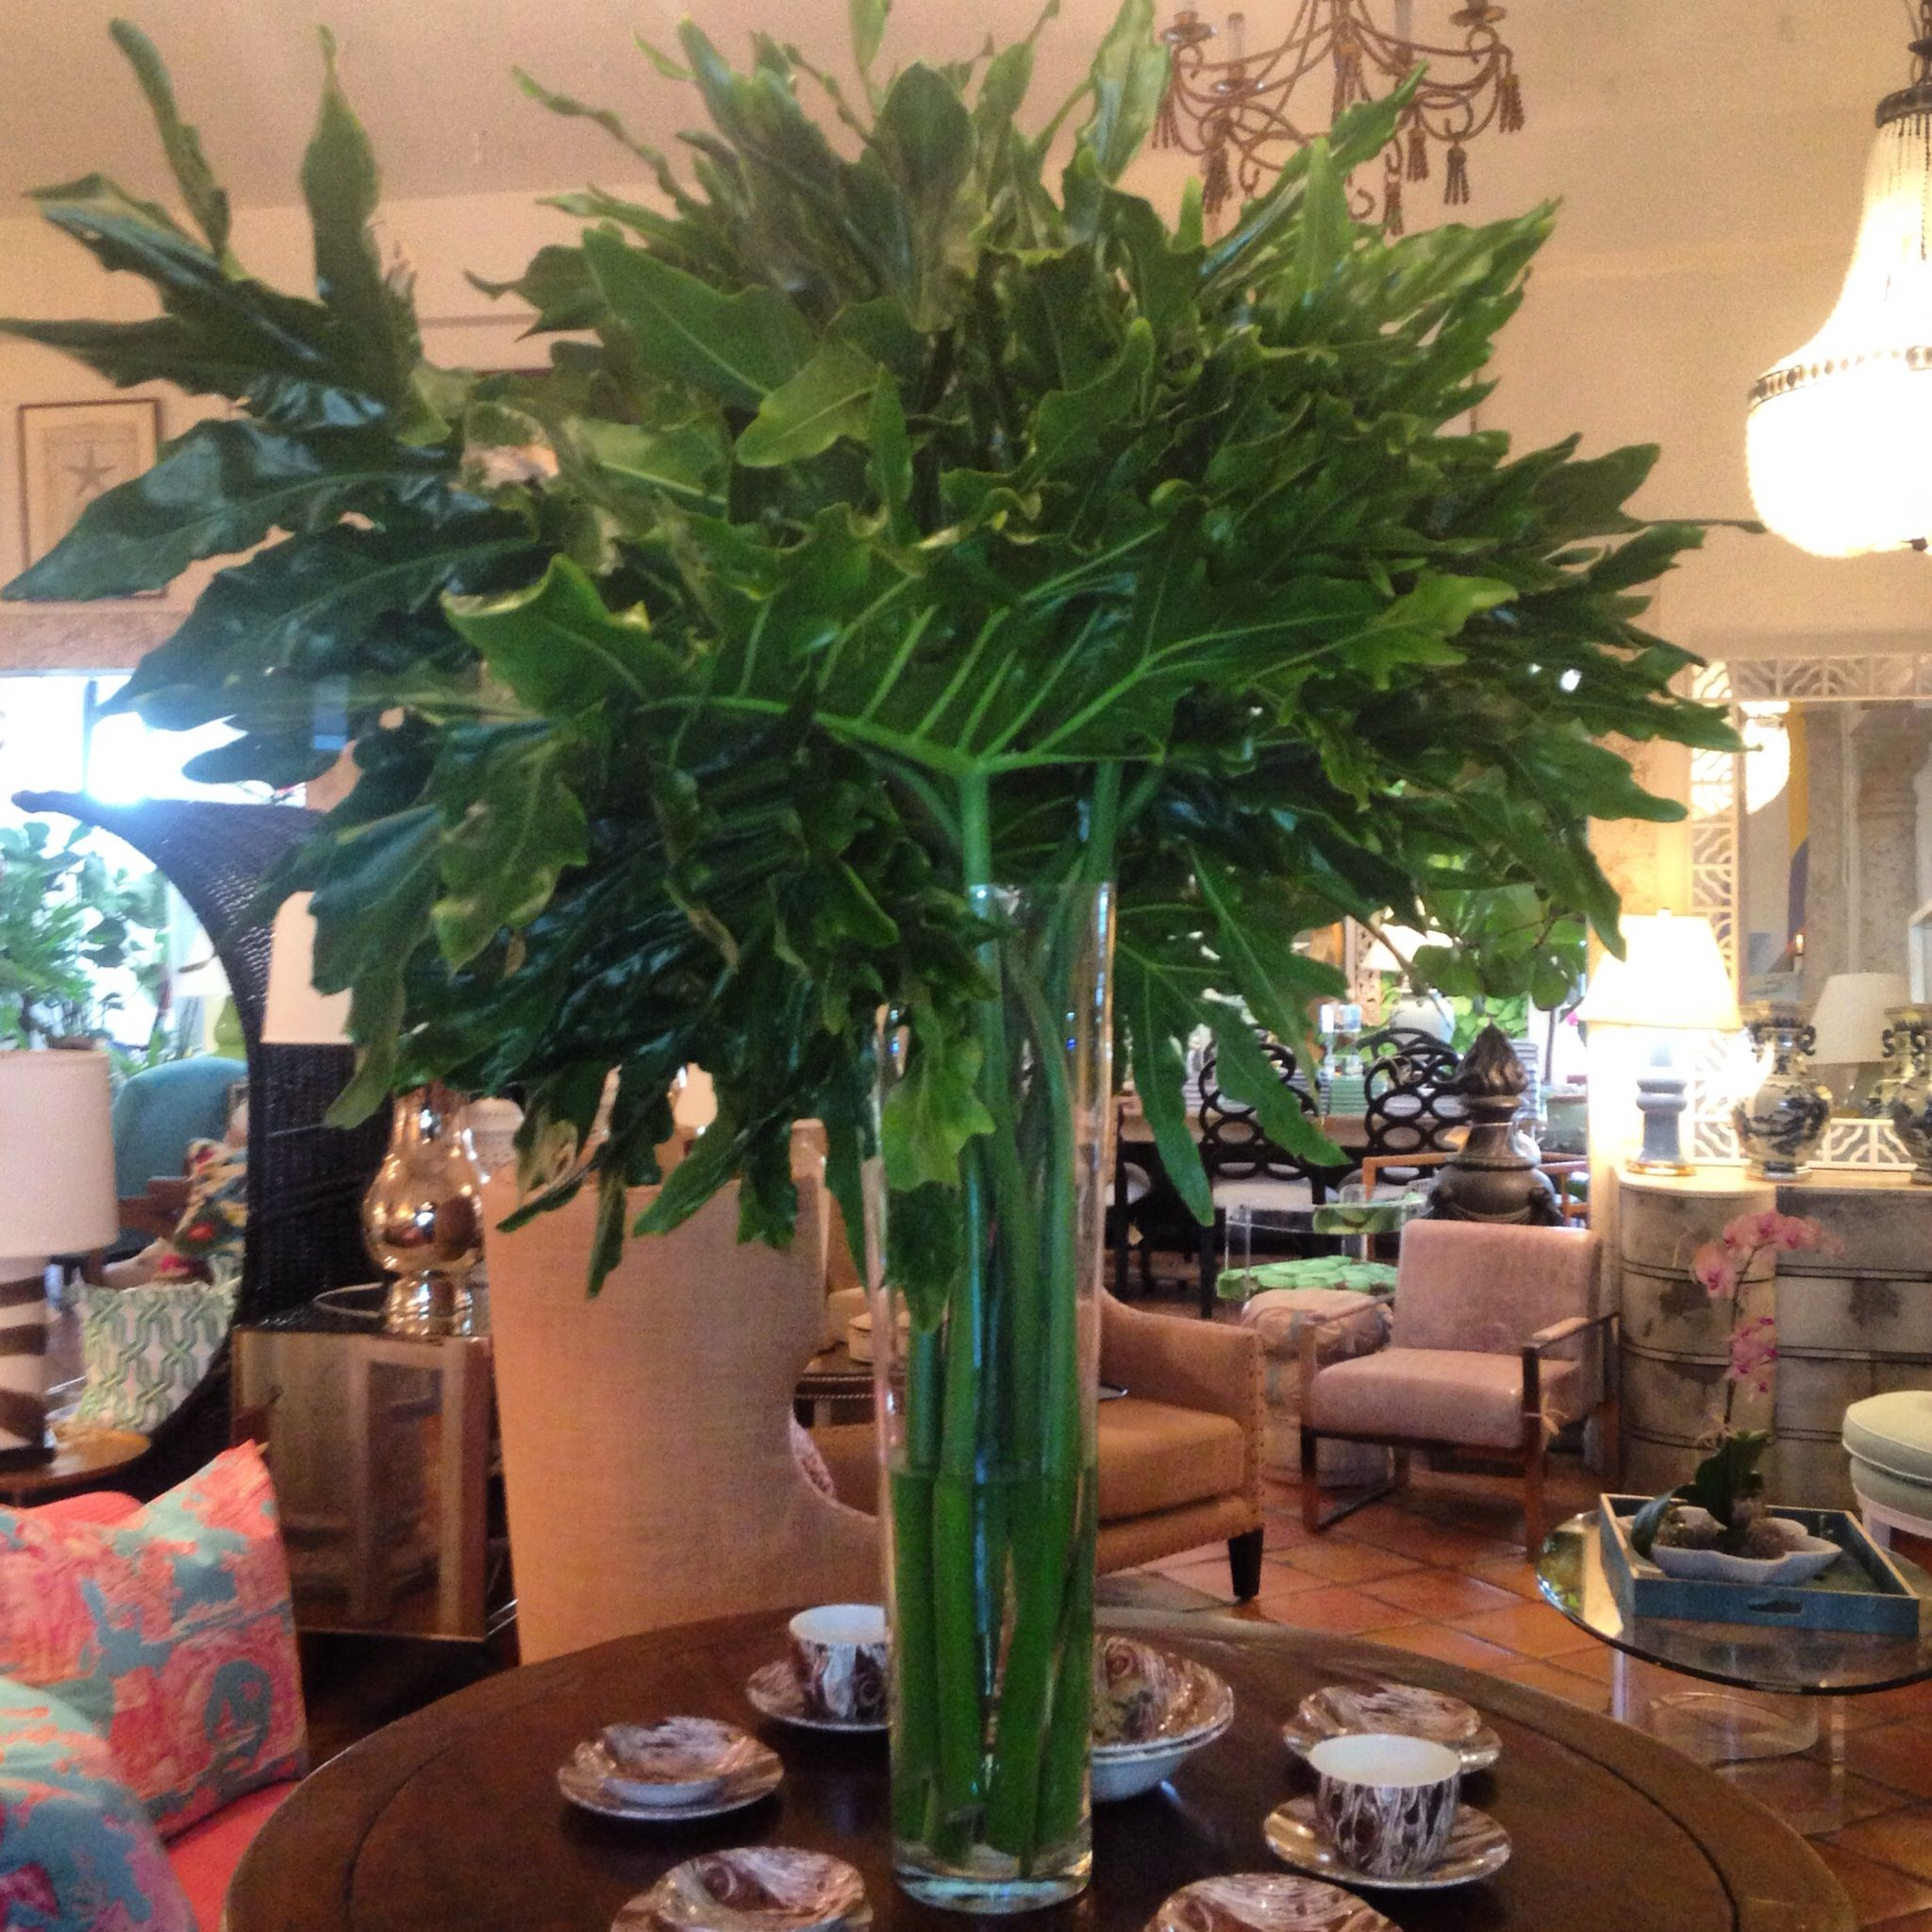 Tall cylindrical #vase with a bountiful green #centerpiece at #PalmBeach #Mecox #interiordesign #MecoxGardens #furniture #shopping #home #decor #design #room #designidea #vintage #antiques #garden